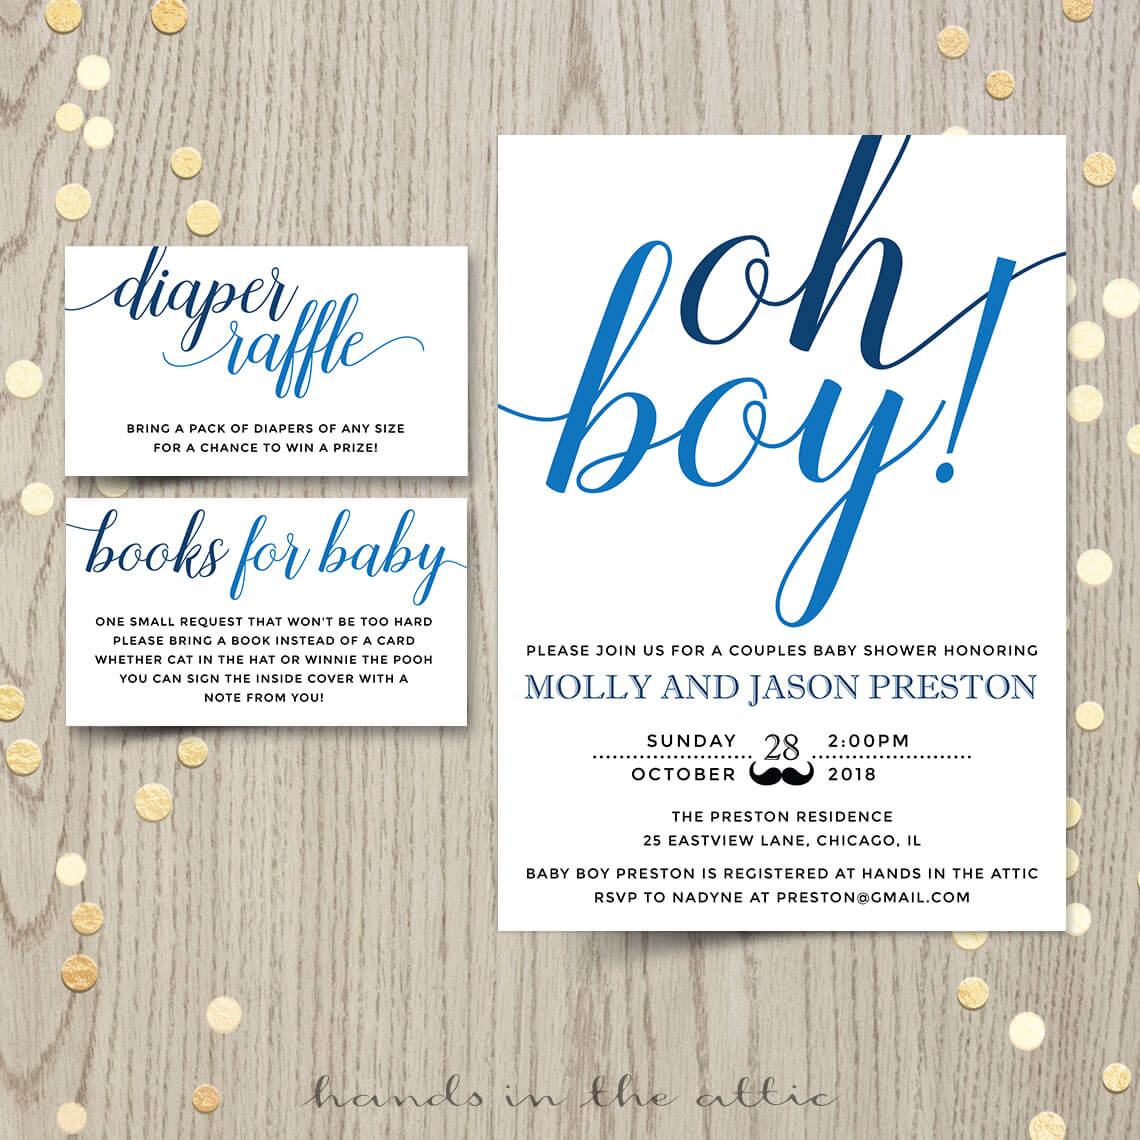 Baby Shower Invitations Archives | Printable Stationery | Weddings ...